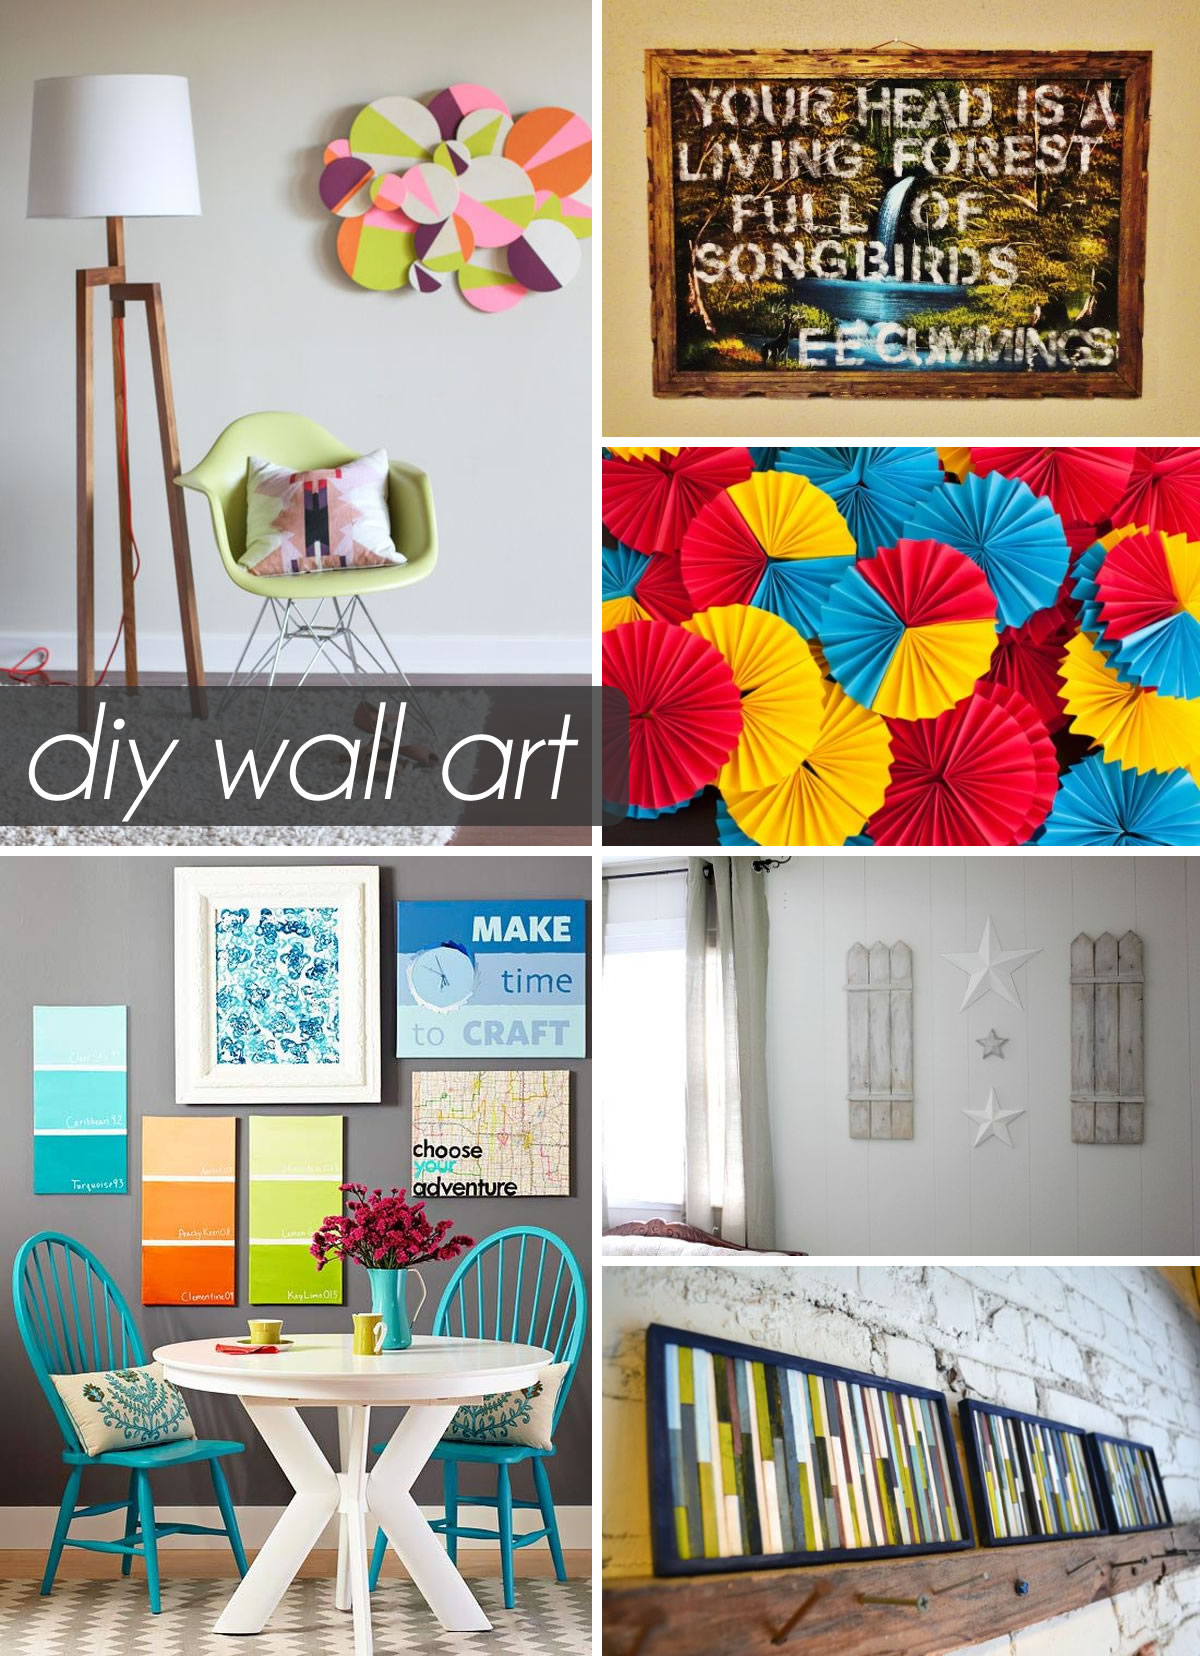 50 Beautiful Diy Wall Art Ideas For Your Home